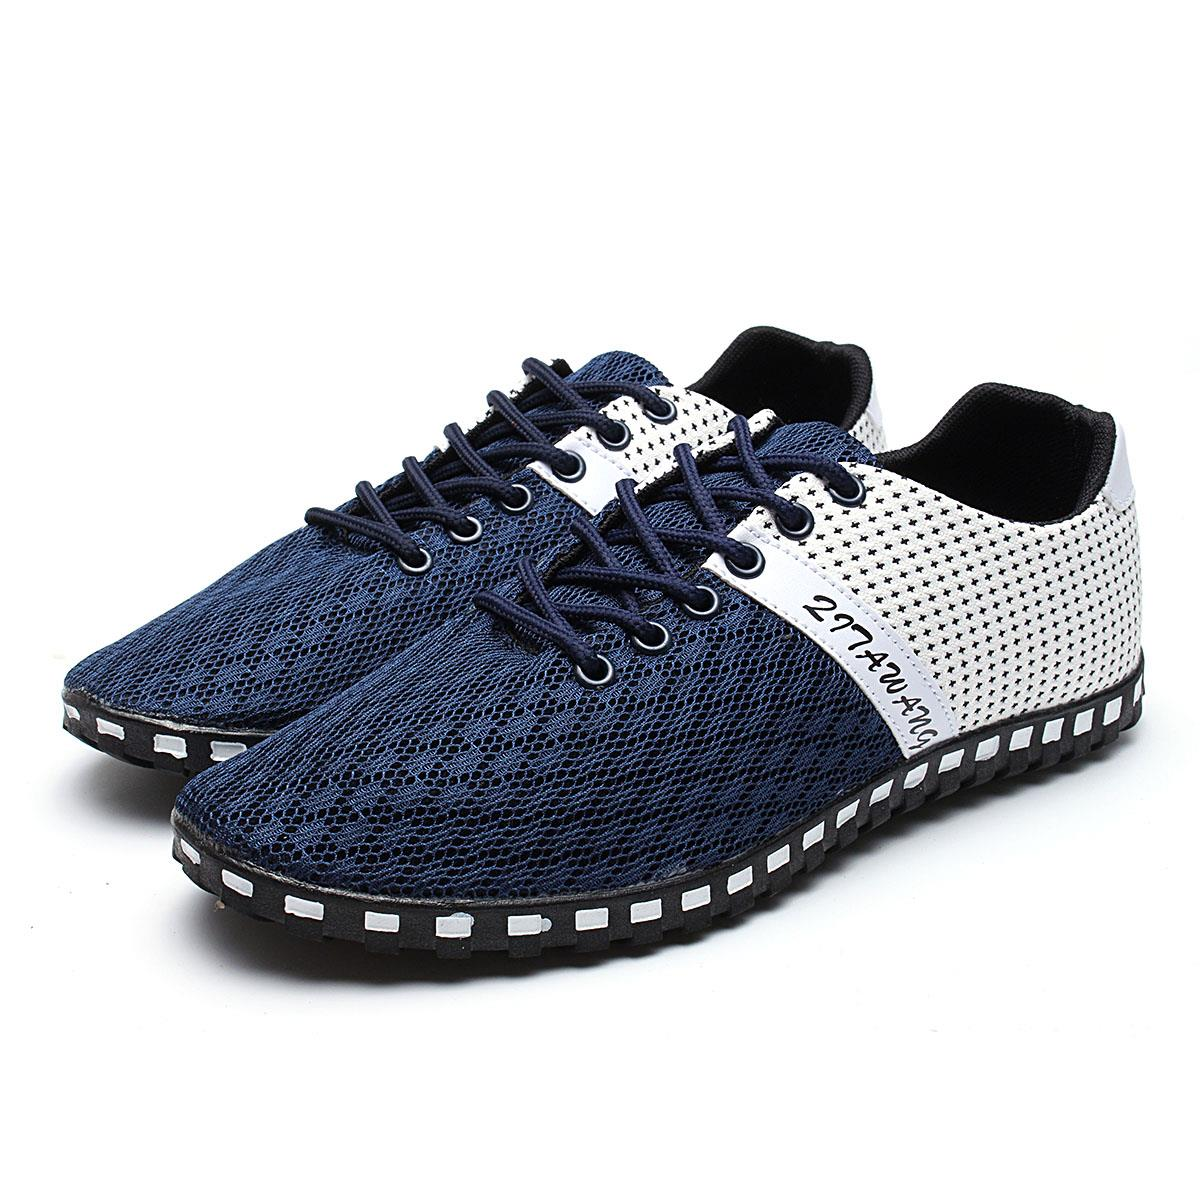 summer style mens slip on water shoes outdoor walking